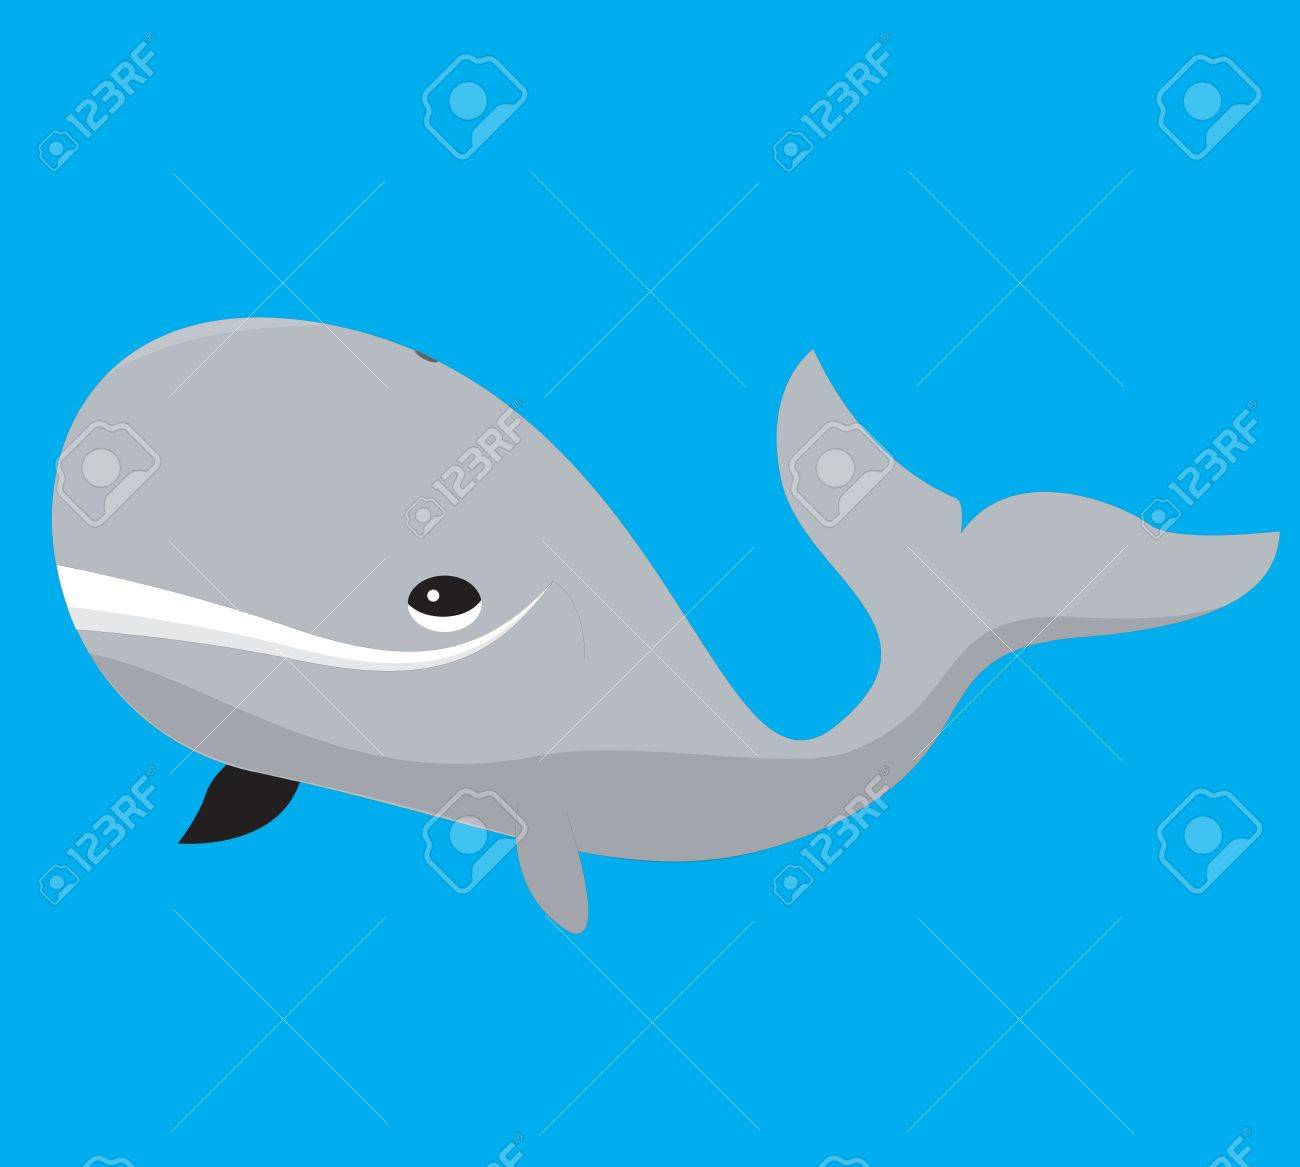 A illustration of a grey cartoon whale on blue background Stock Vector - 19511107